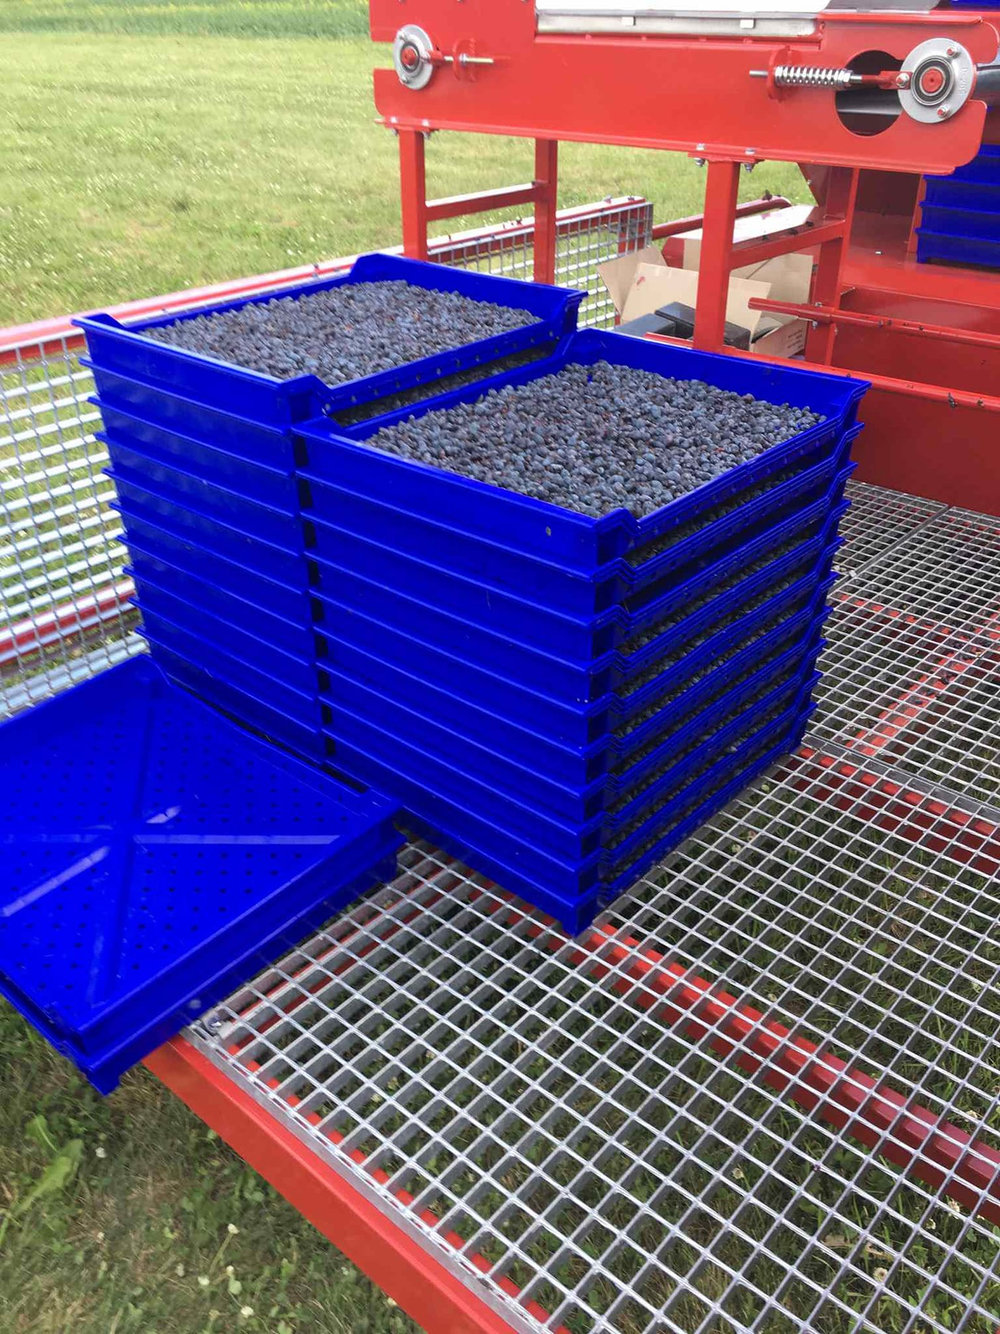 - After the berries were sorted into trays coming off the conveyor belt, they had to be washed and sorted a second time.